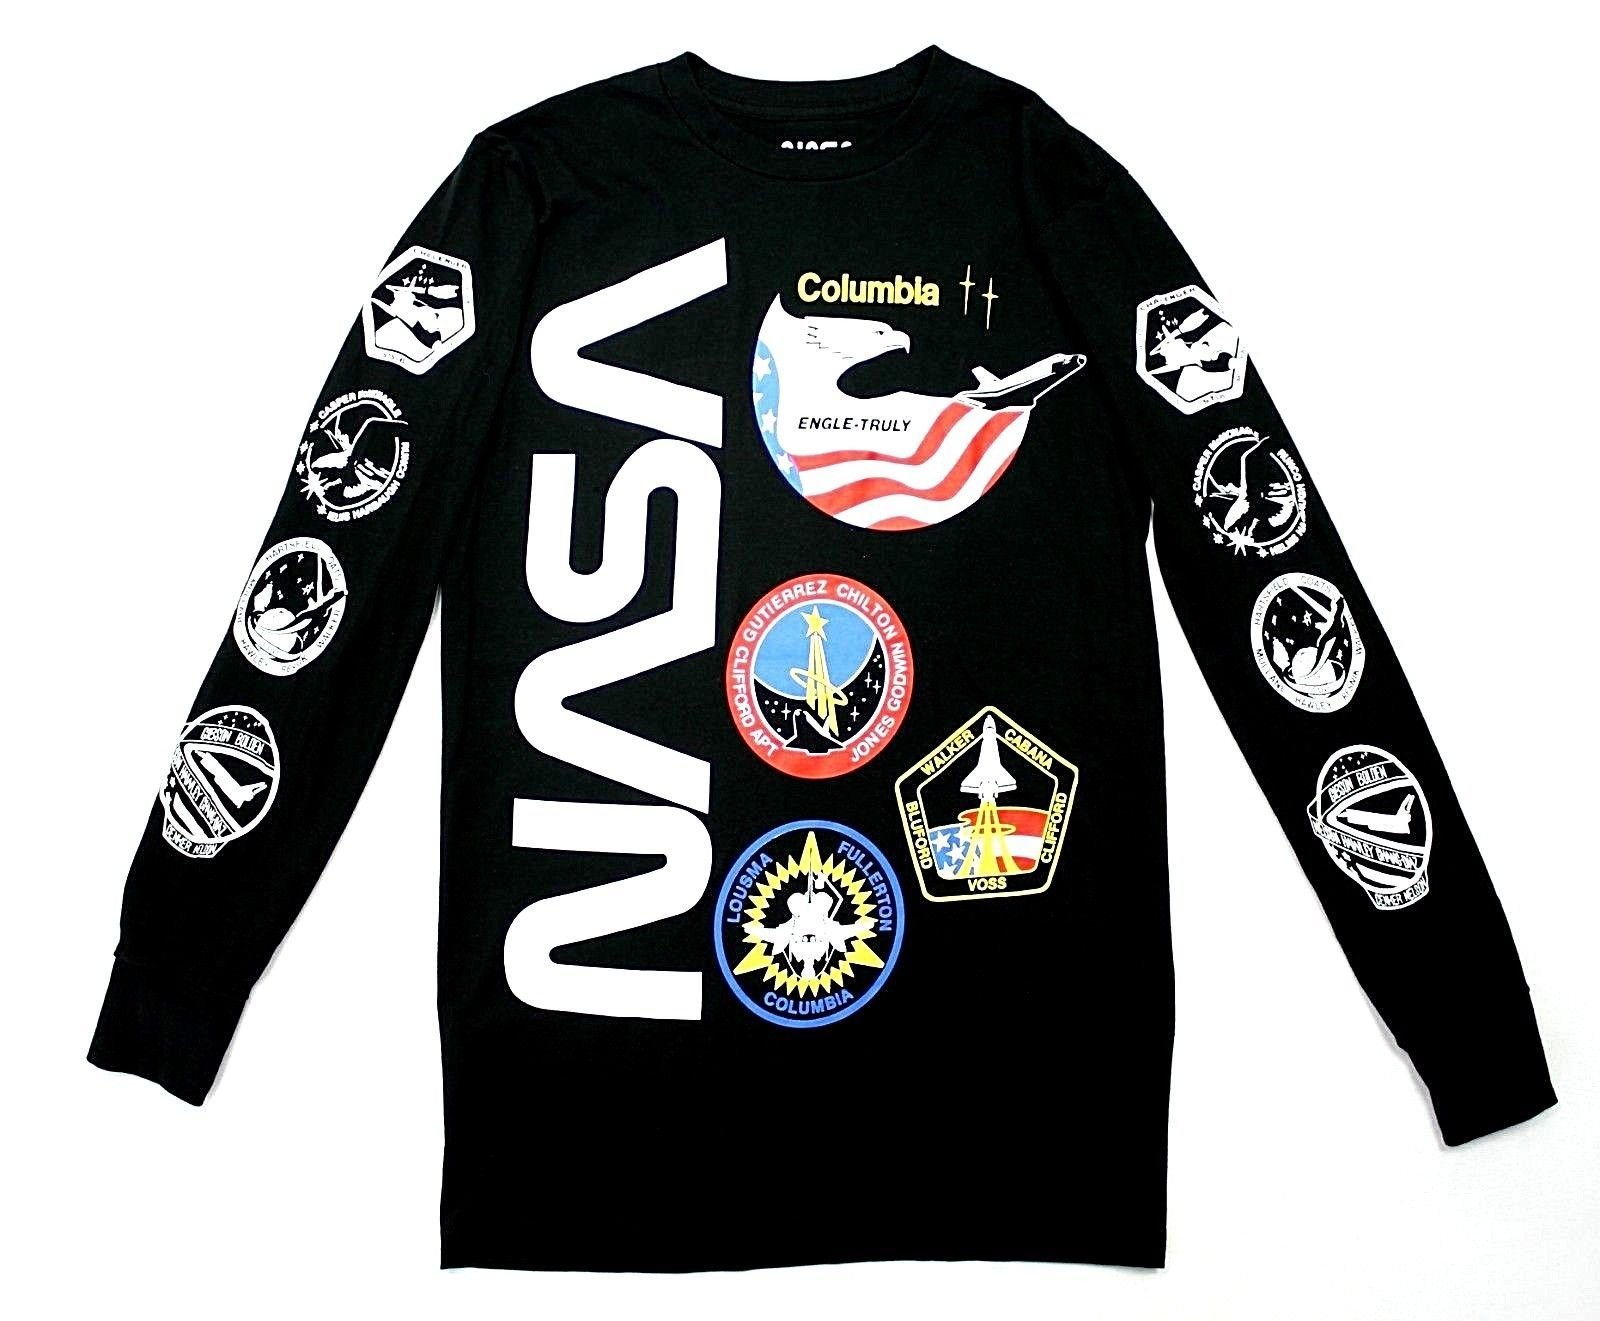 a81894752f7a 29.99 | NASA Mens Black Long Sleeve Graphic Tee Space Missions All Over  Print T Shirt ❤ #sleeve #graphic #missions #gifts #Comfy #souvenirs  #photography ...